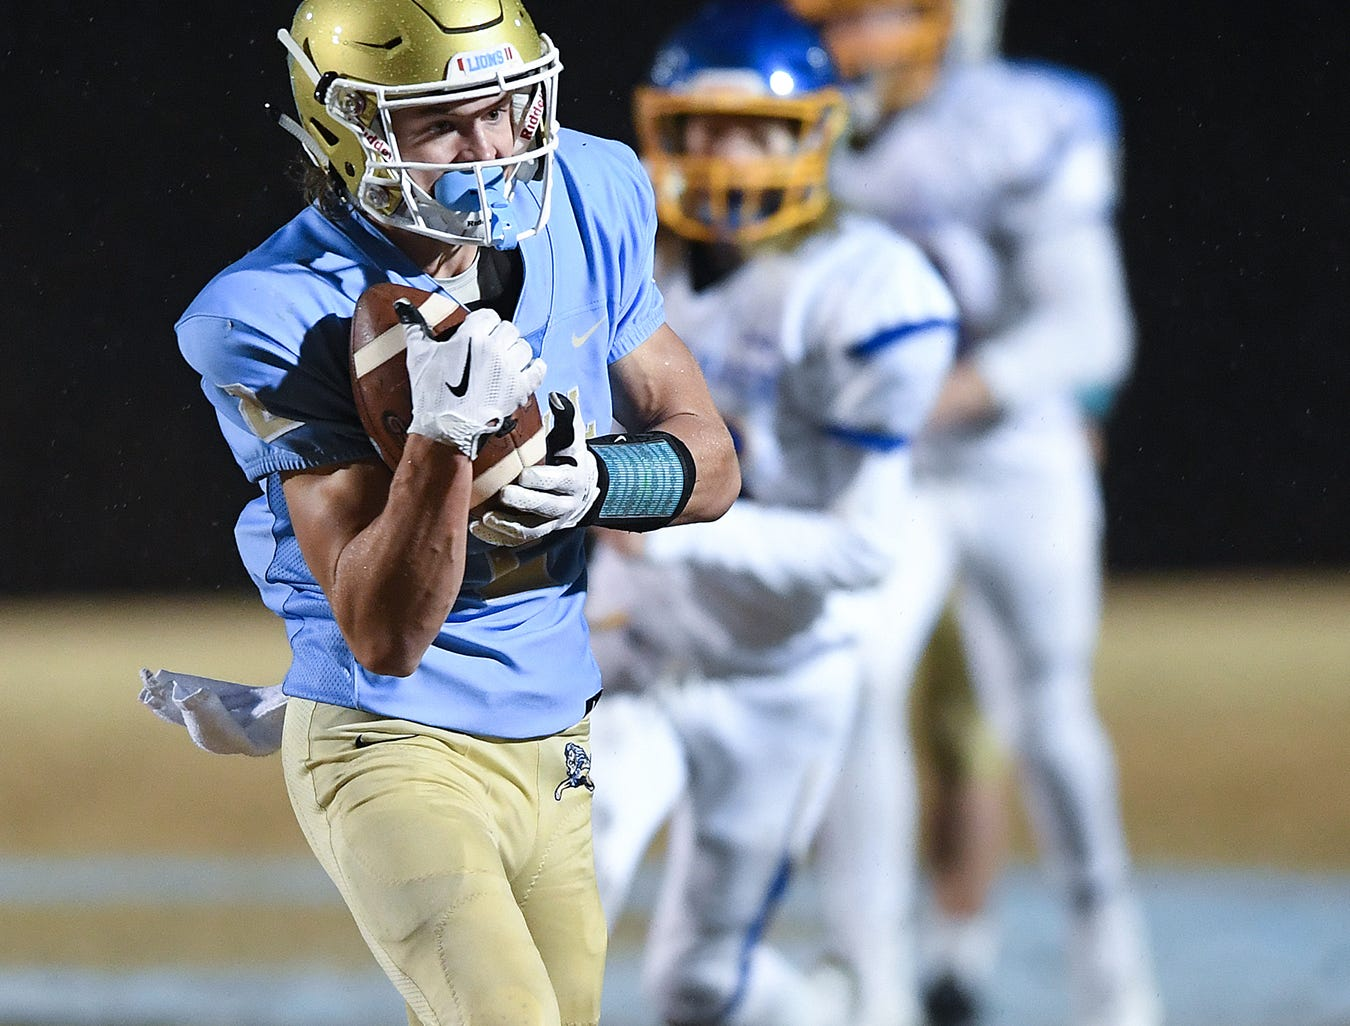 Daniel's Hampton Earle (2) makes a reception against Wren during the third round of the class AAAA playoffs Friday, November 23, 2018, at Daniel High in Central.